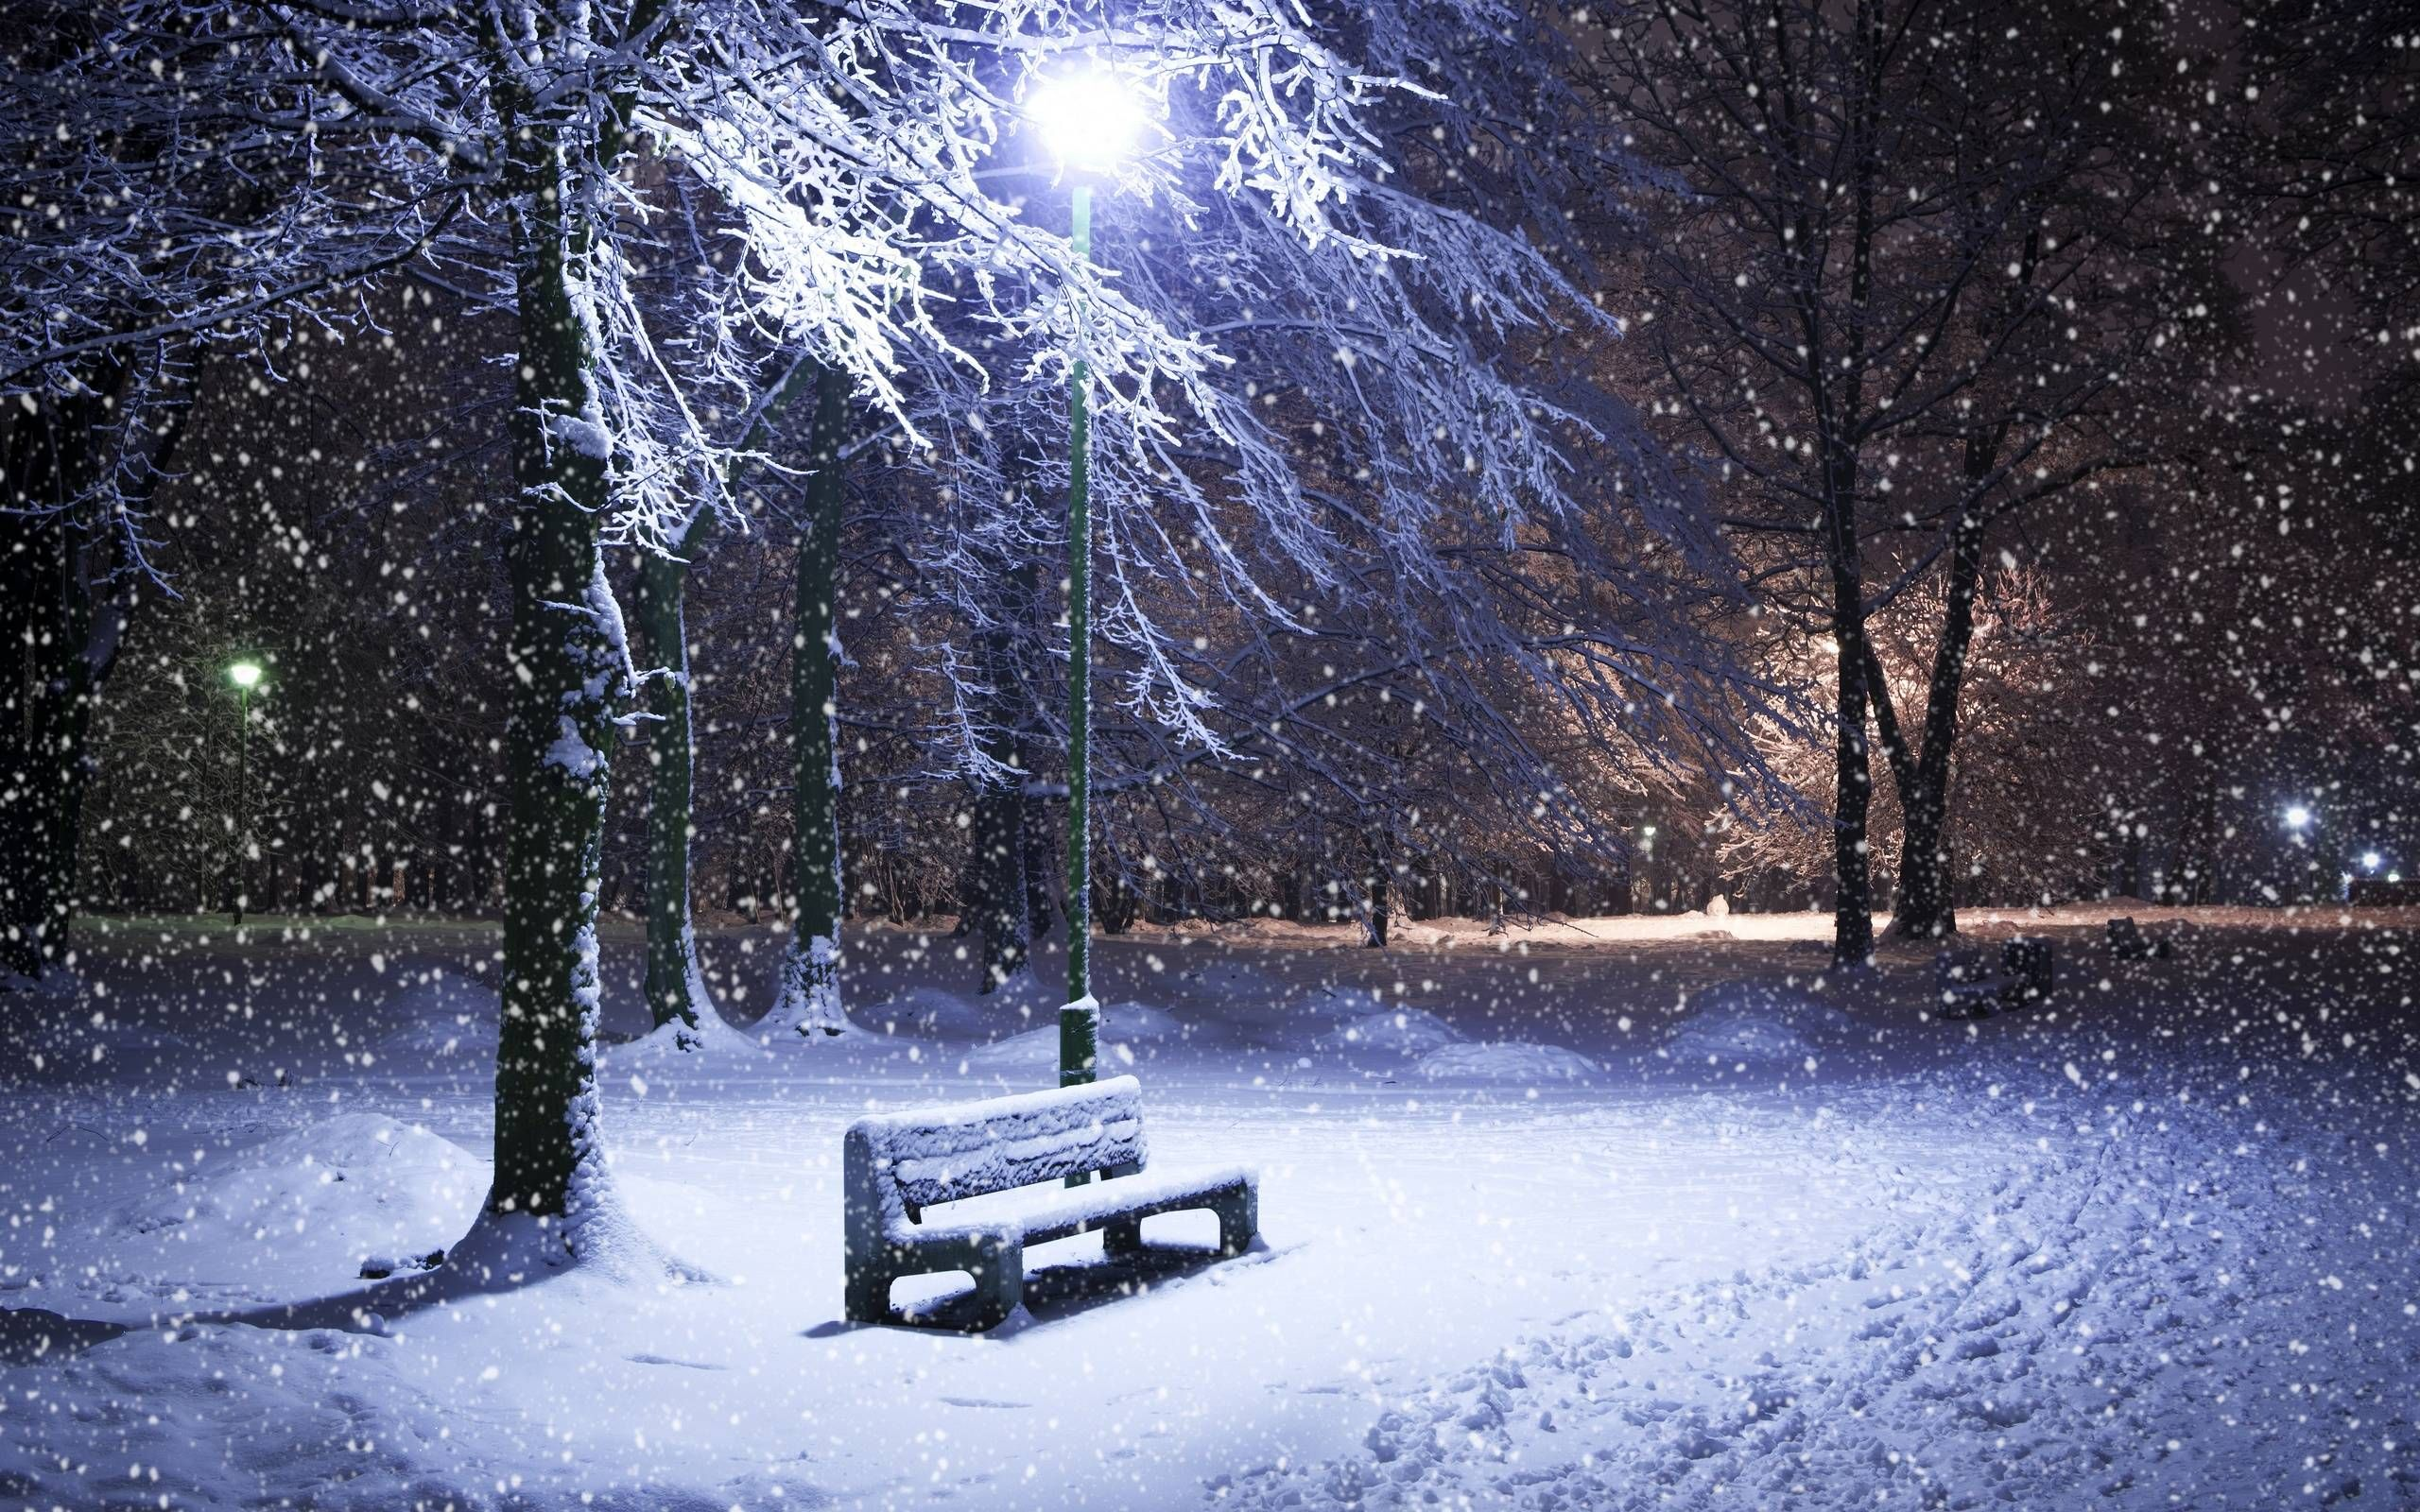 Hd wallpaper night - Winter Desktop Pics Wallpapers With Id 12046 On Nature Category In Hd Wallpaper Site Winter Desktop Pics Wallpapers Is One From Many Hd Wallpapers On